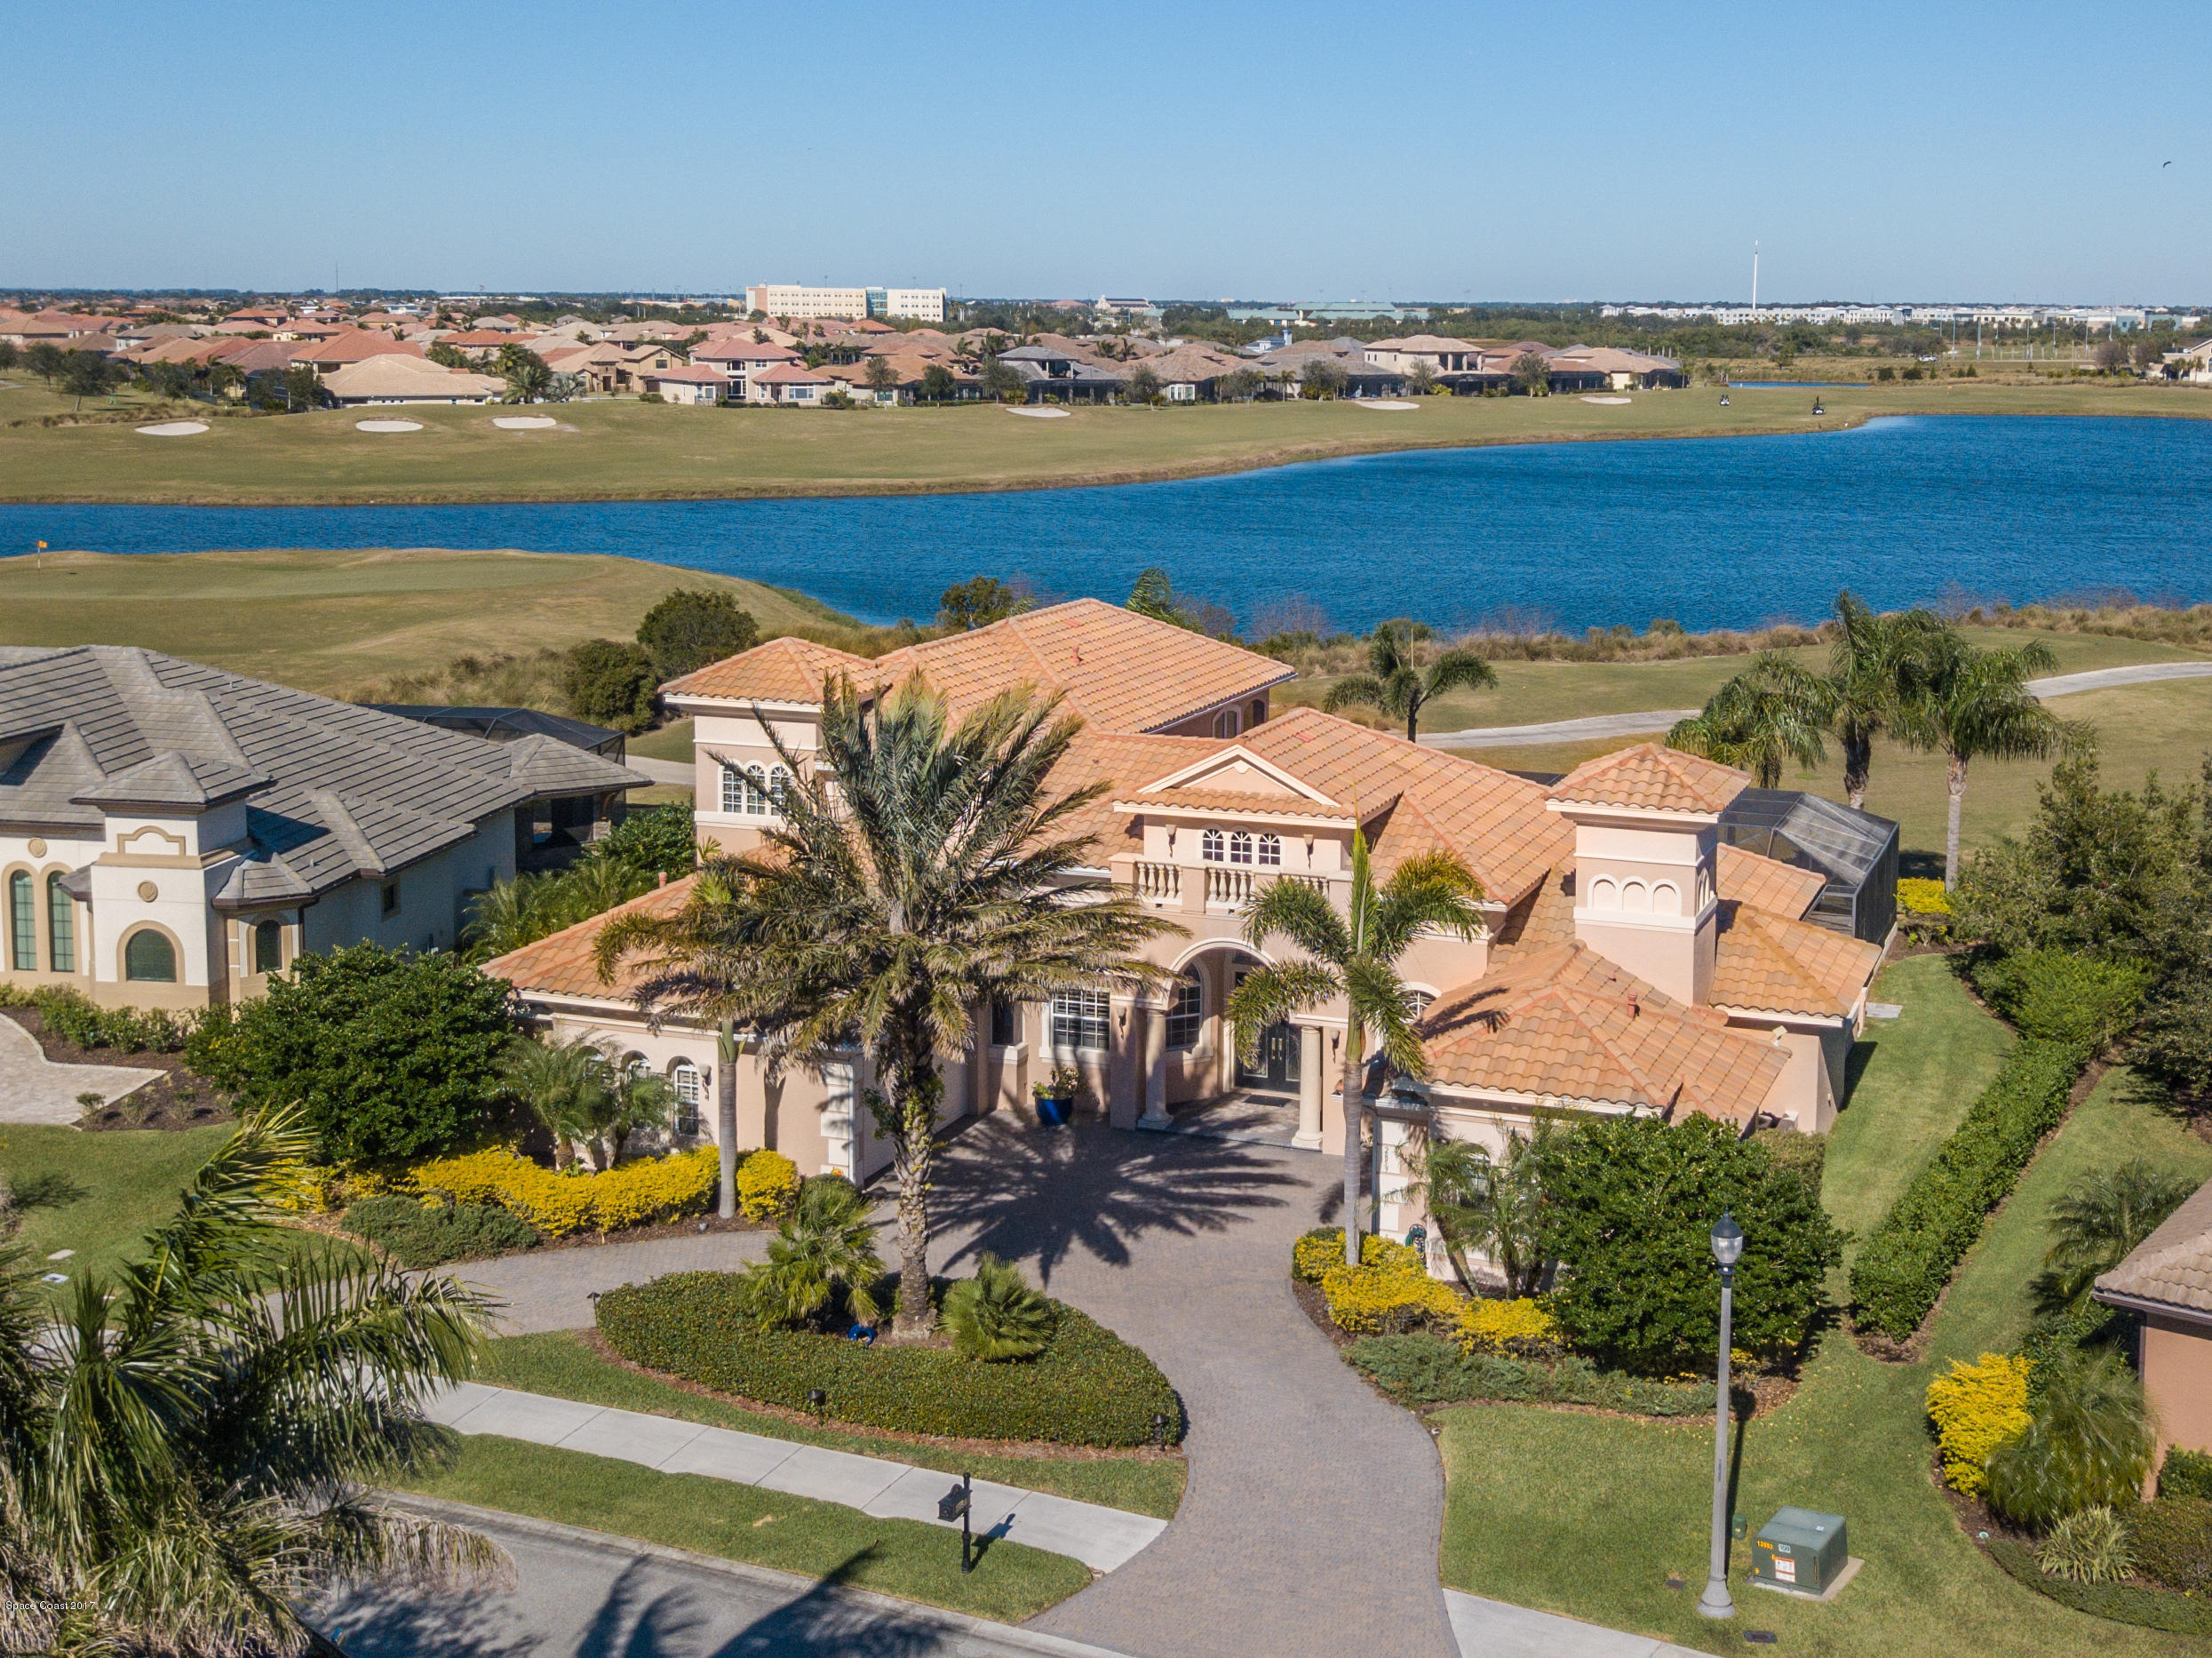 Single Family Home for Sale at 2859 Wyndham 2859 Wyndham Melbourne, Florida 32940 United States